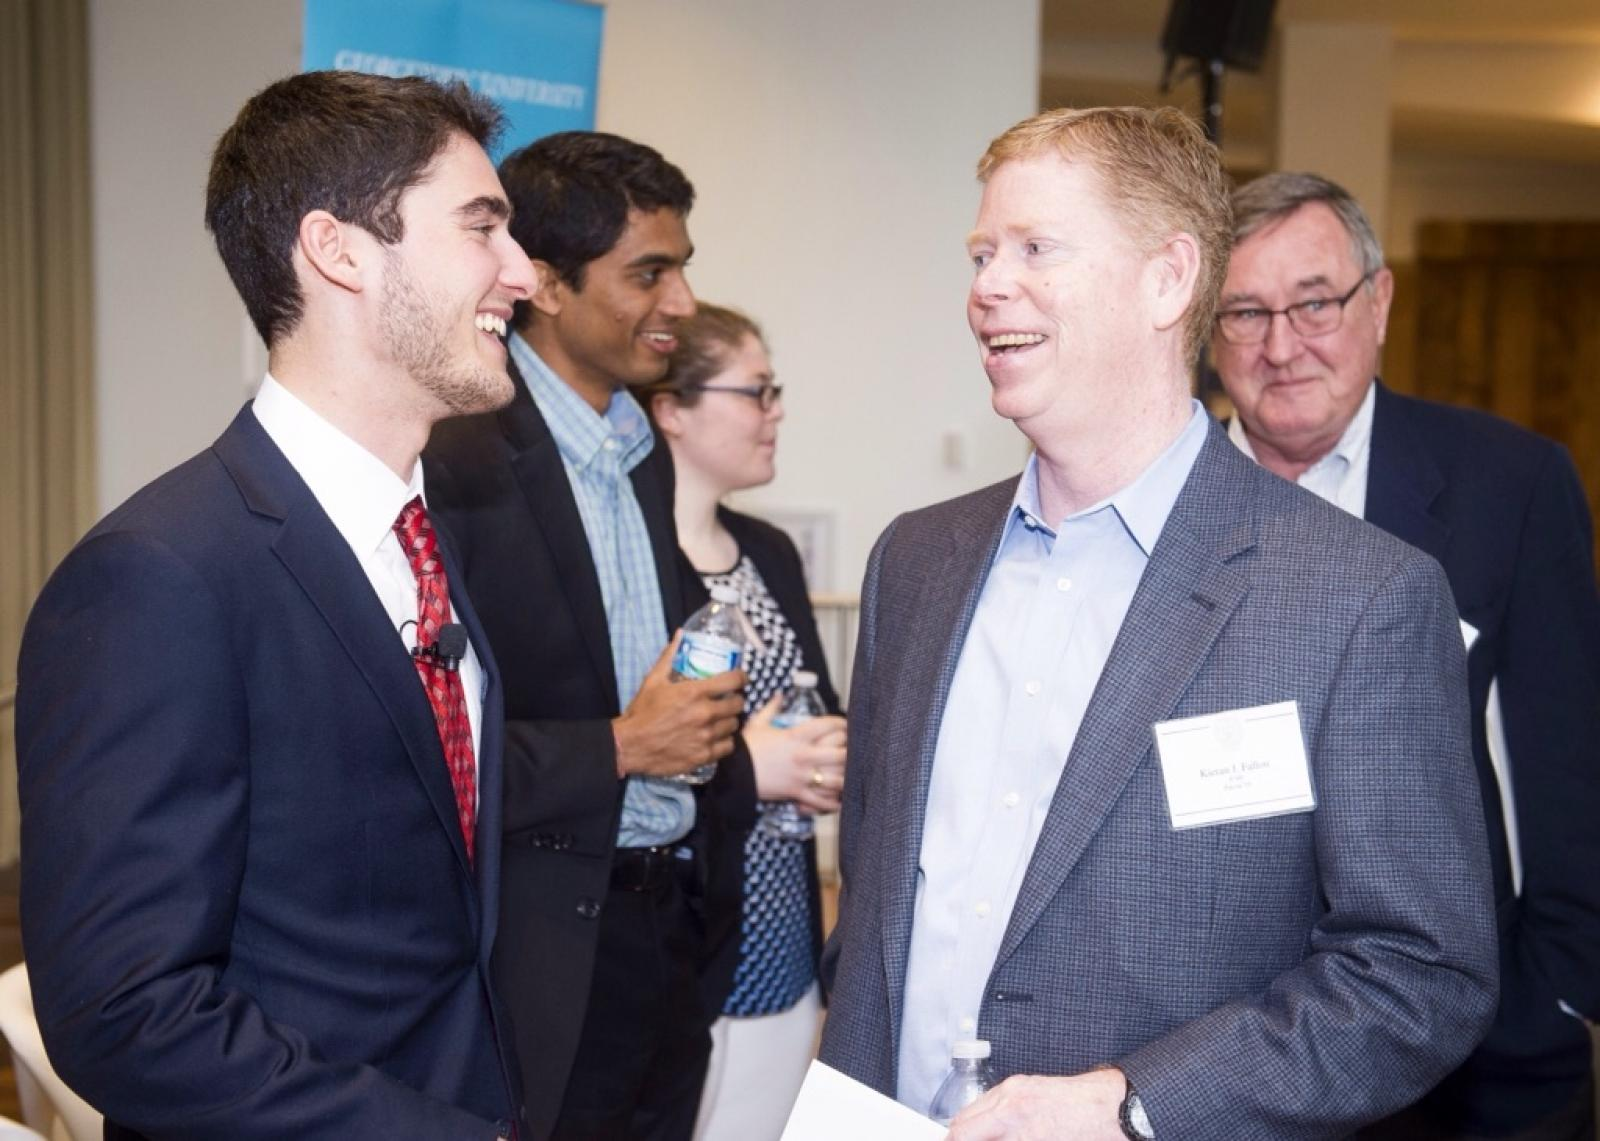 Zachary Kay (F'16) (left) speaks with Kieran J. Fallon (F'88, Parent'19) during the Scholarship Recognition Event in April.